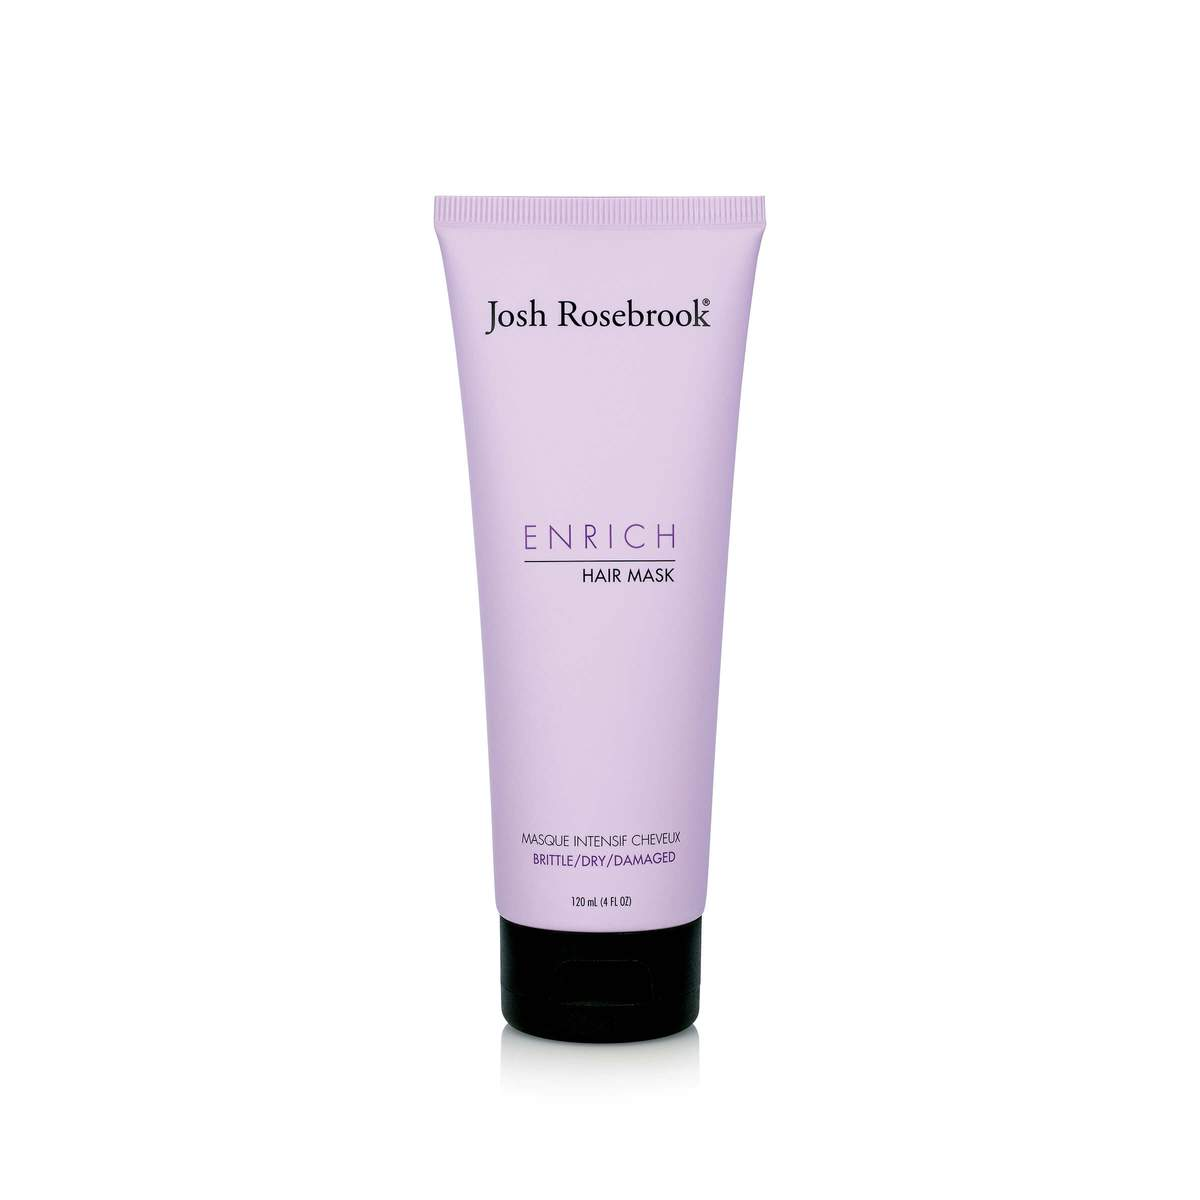 Josh Rosebrook Enrich Intensive Hair Mask Full Size